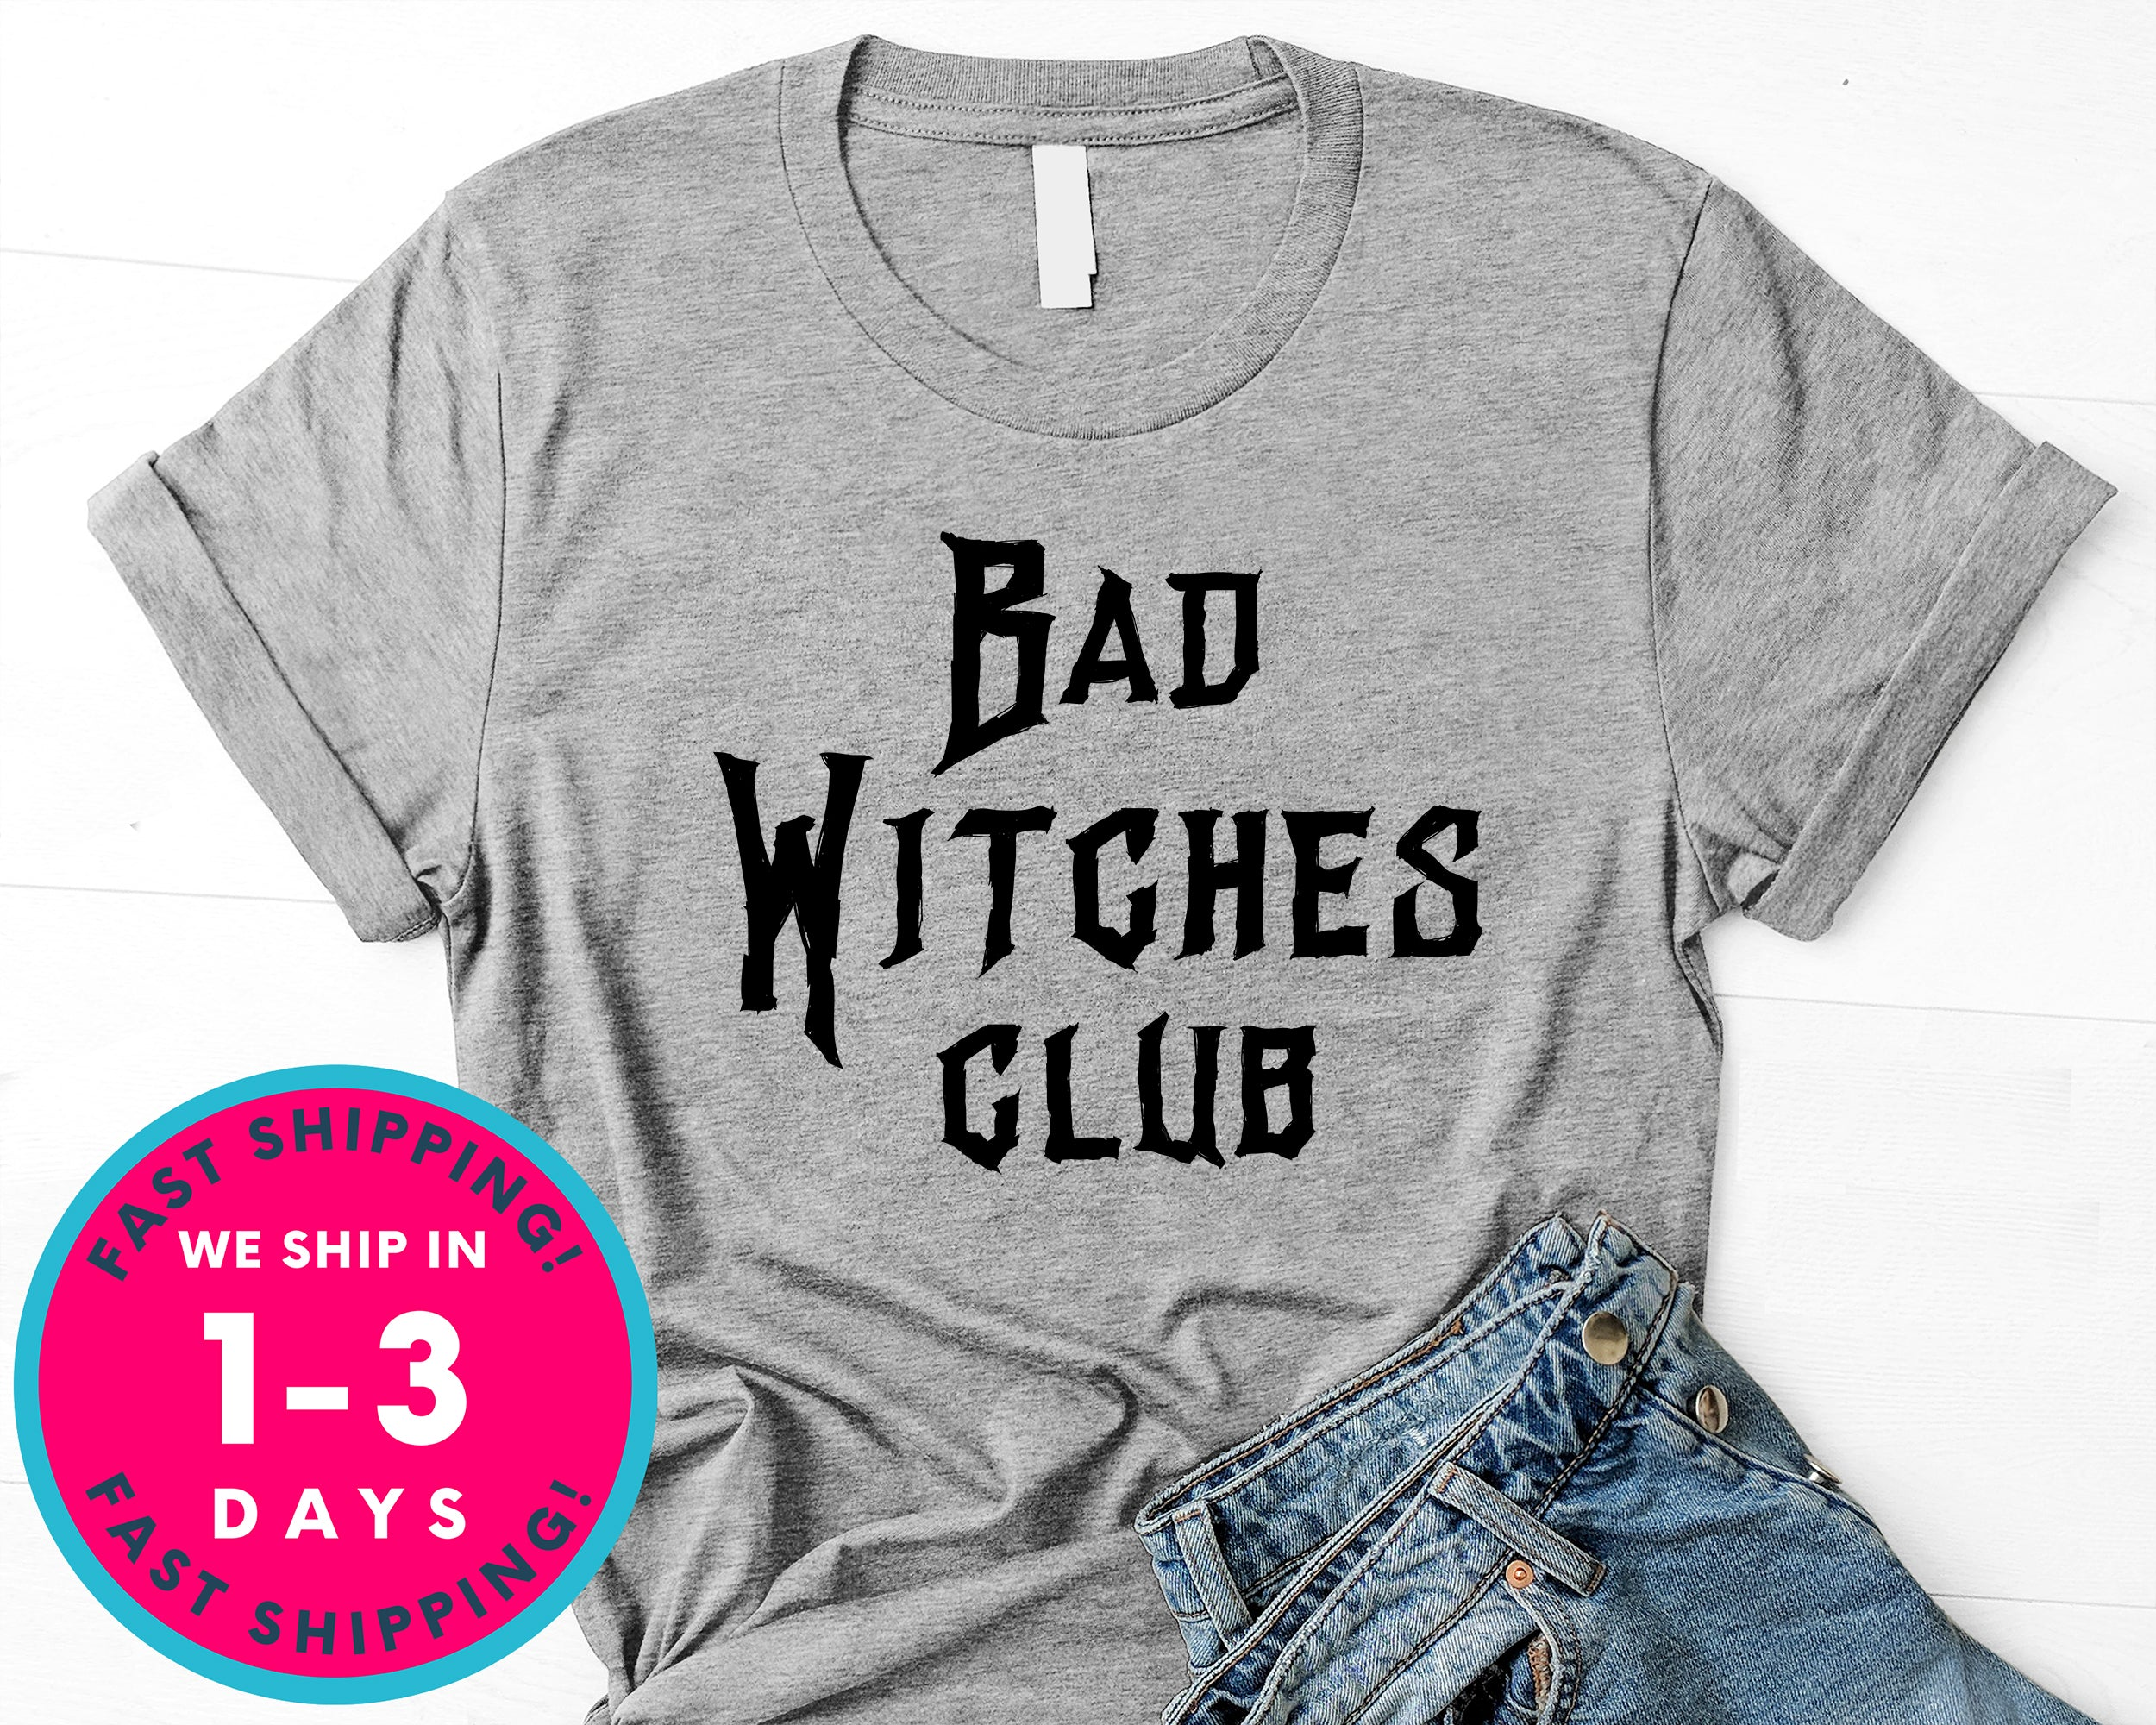 Bad Witches Club T-Shirt - Halloween Horror Scary Shirt